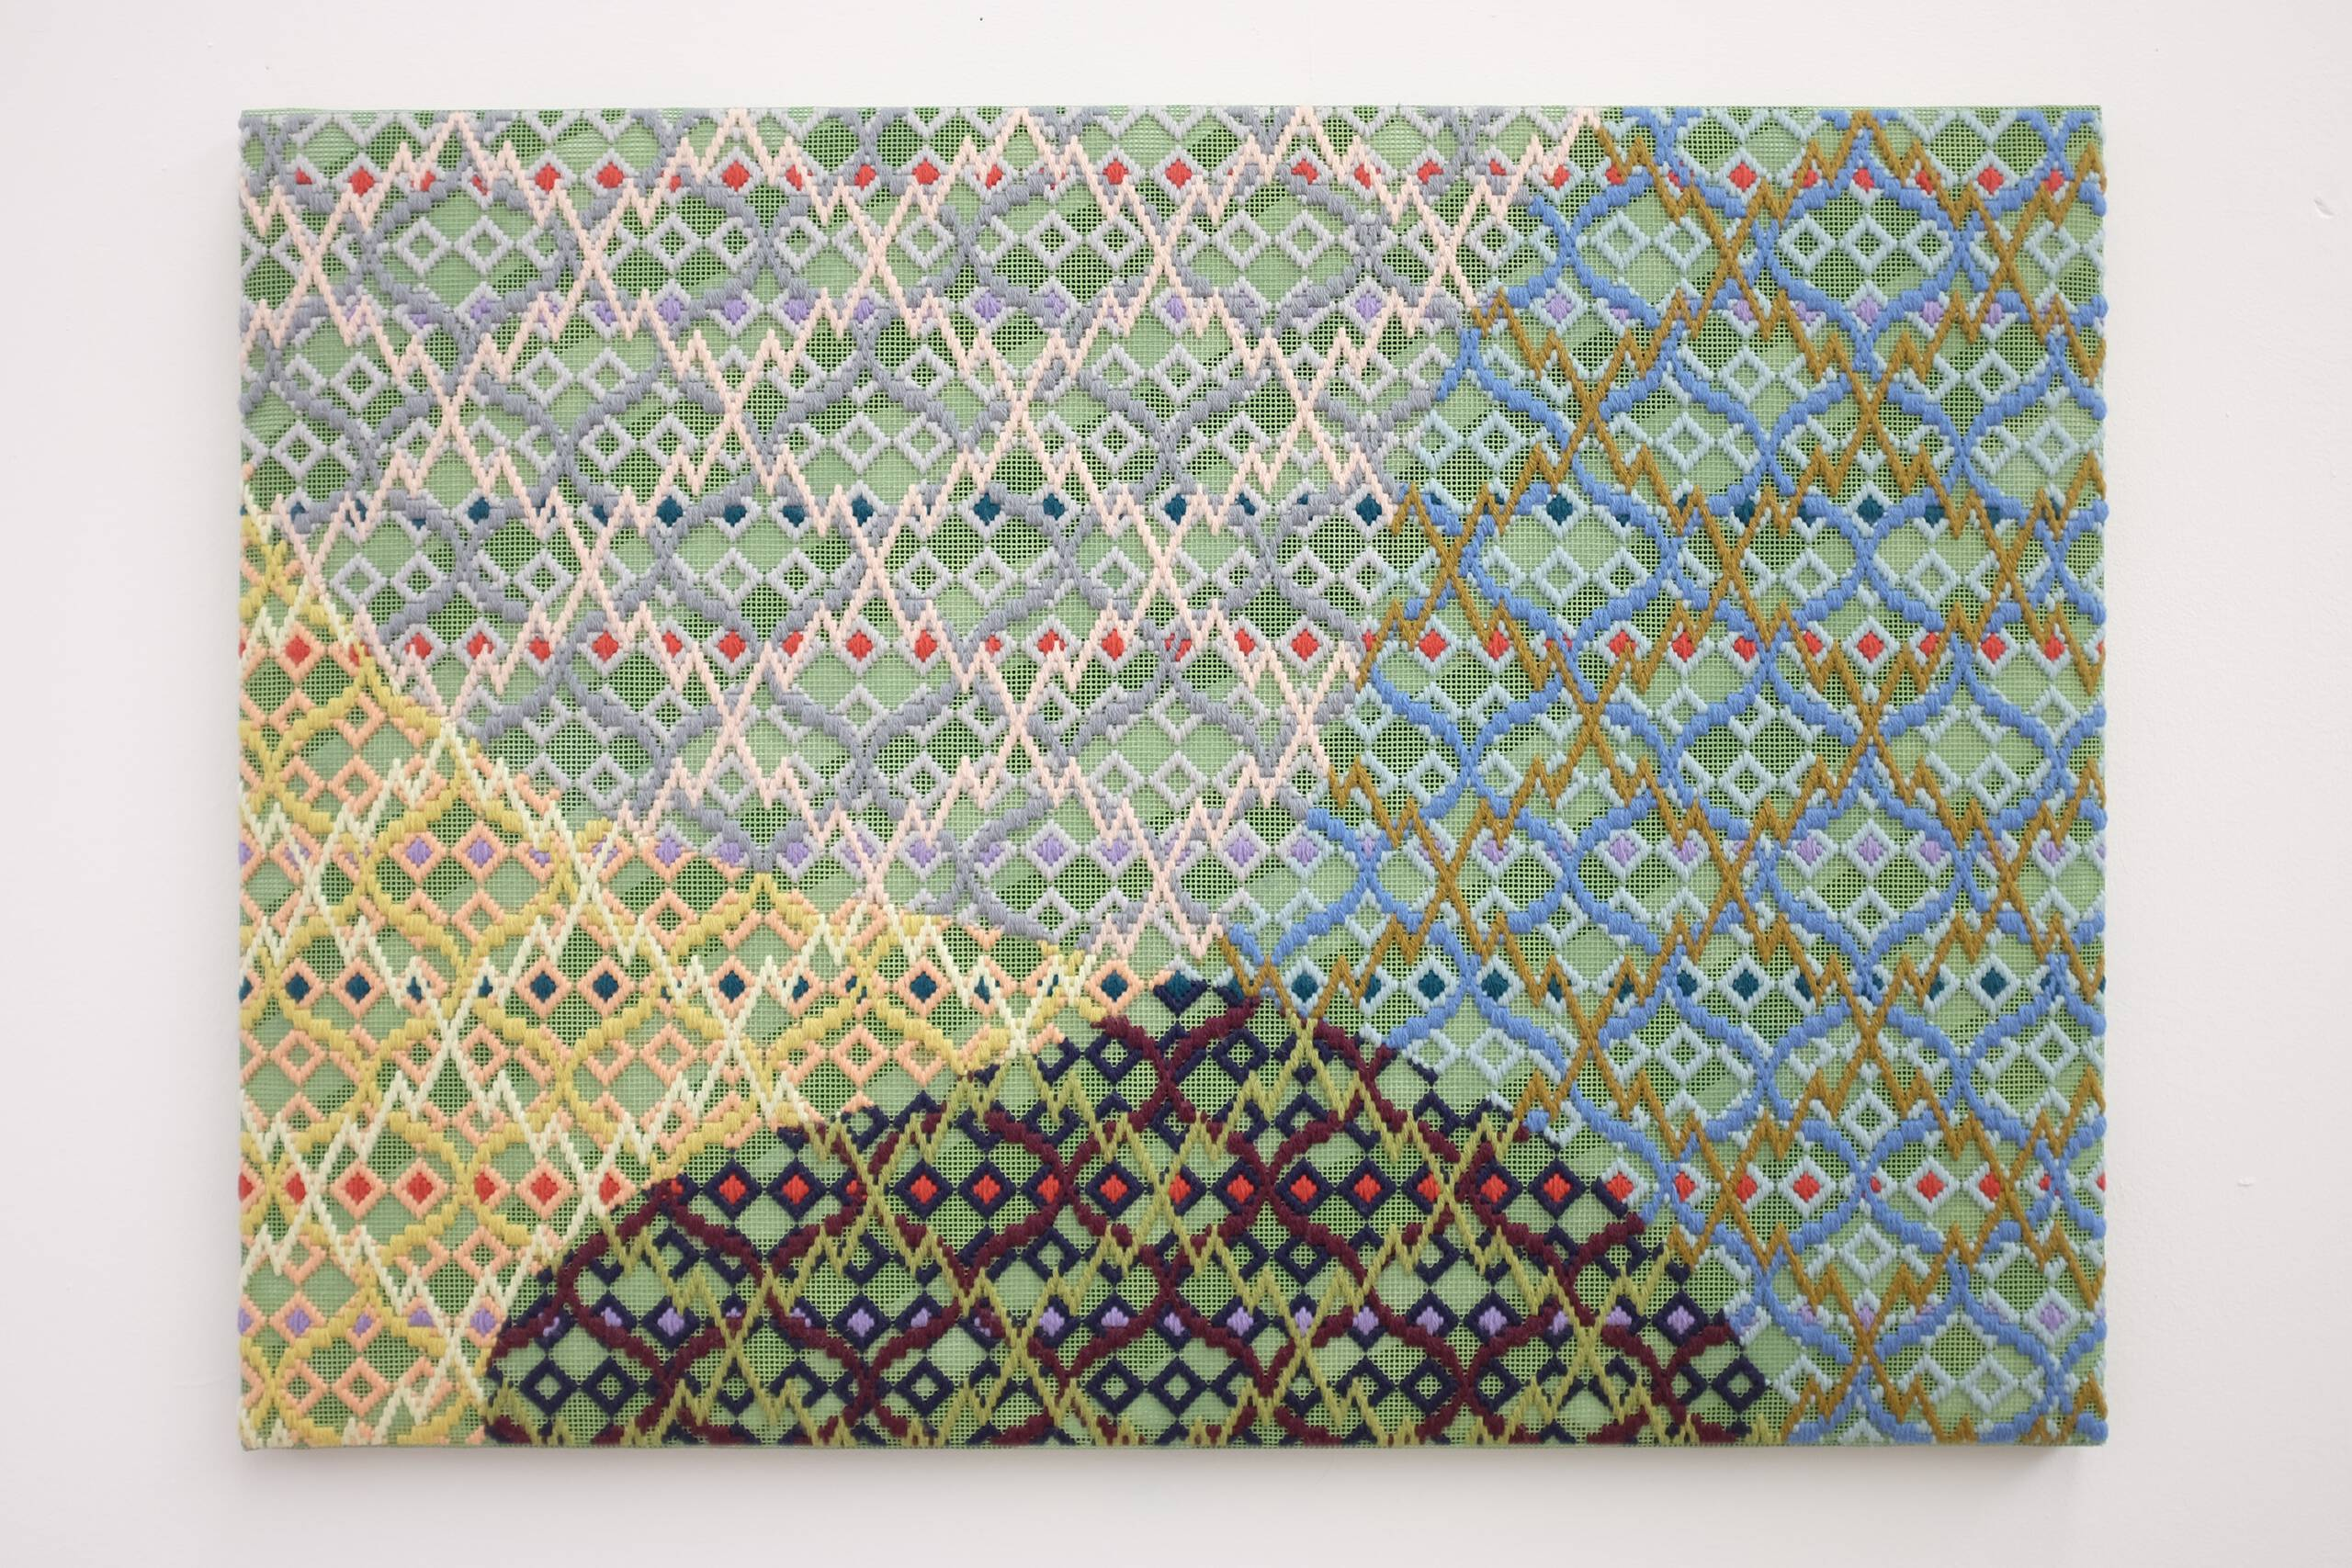 Michael Pollan says it's OK to take psychedelic drugs (in a therapeutic setting), part 2, Hand-embroidered wool on canvas over panel, 2018